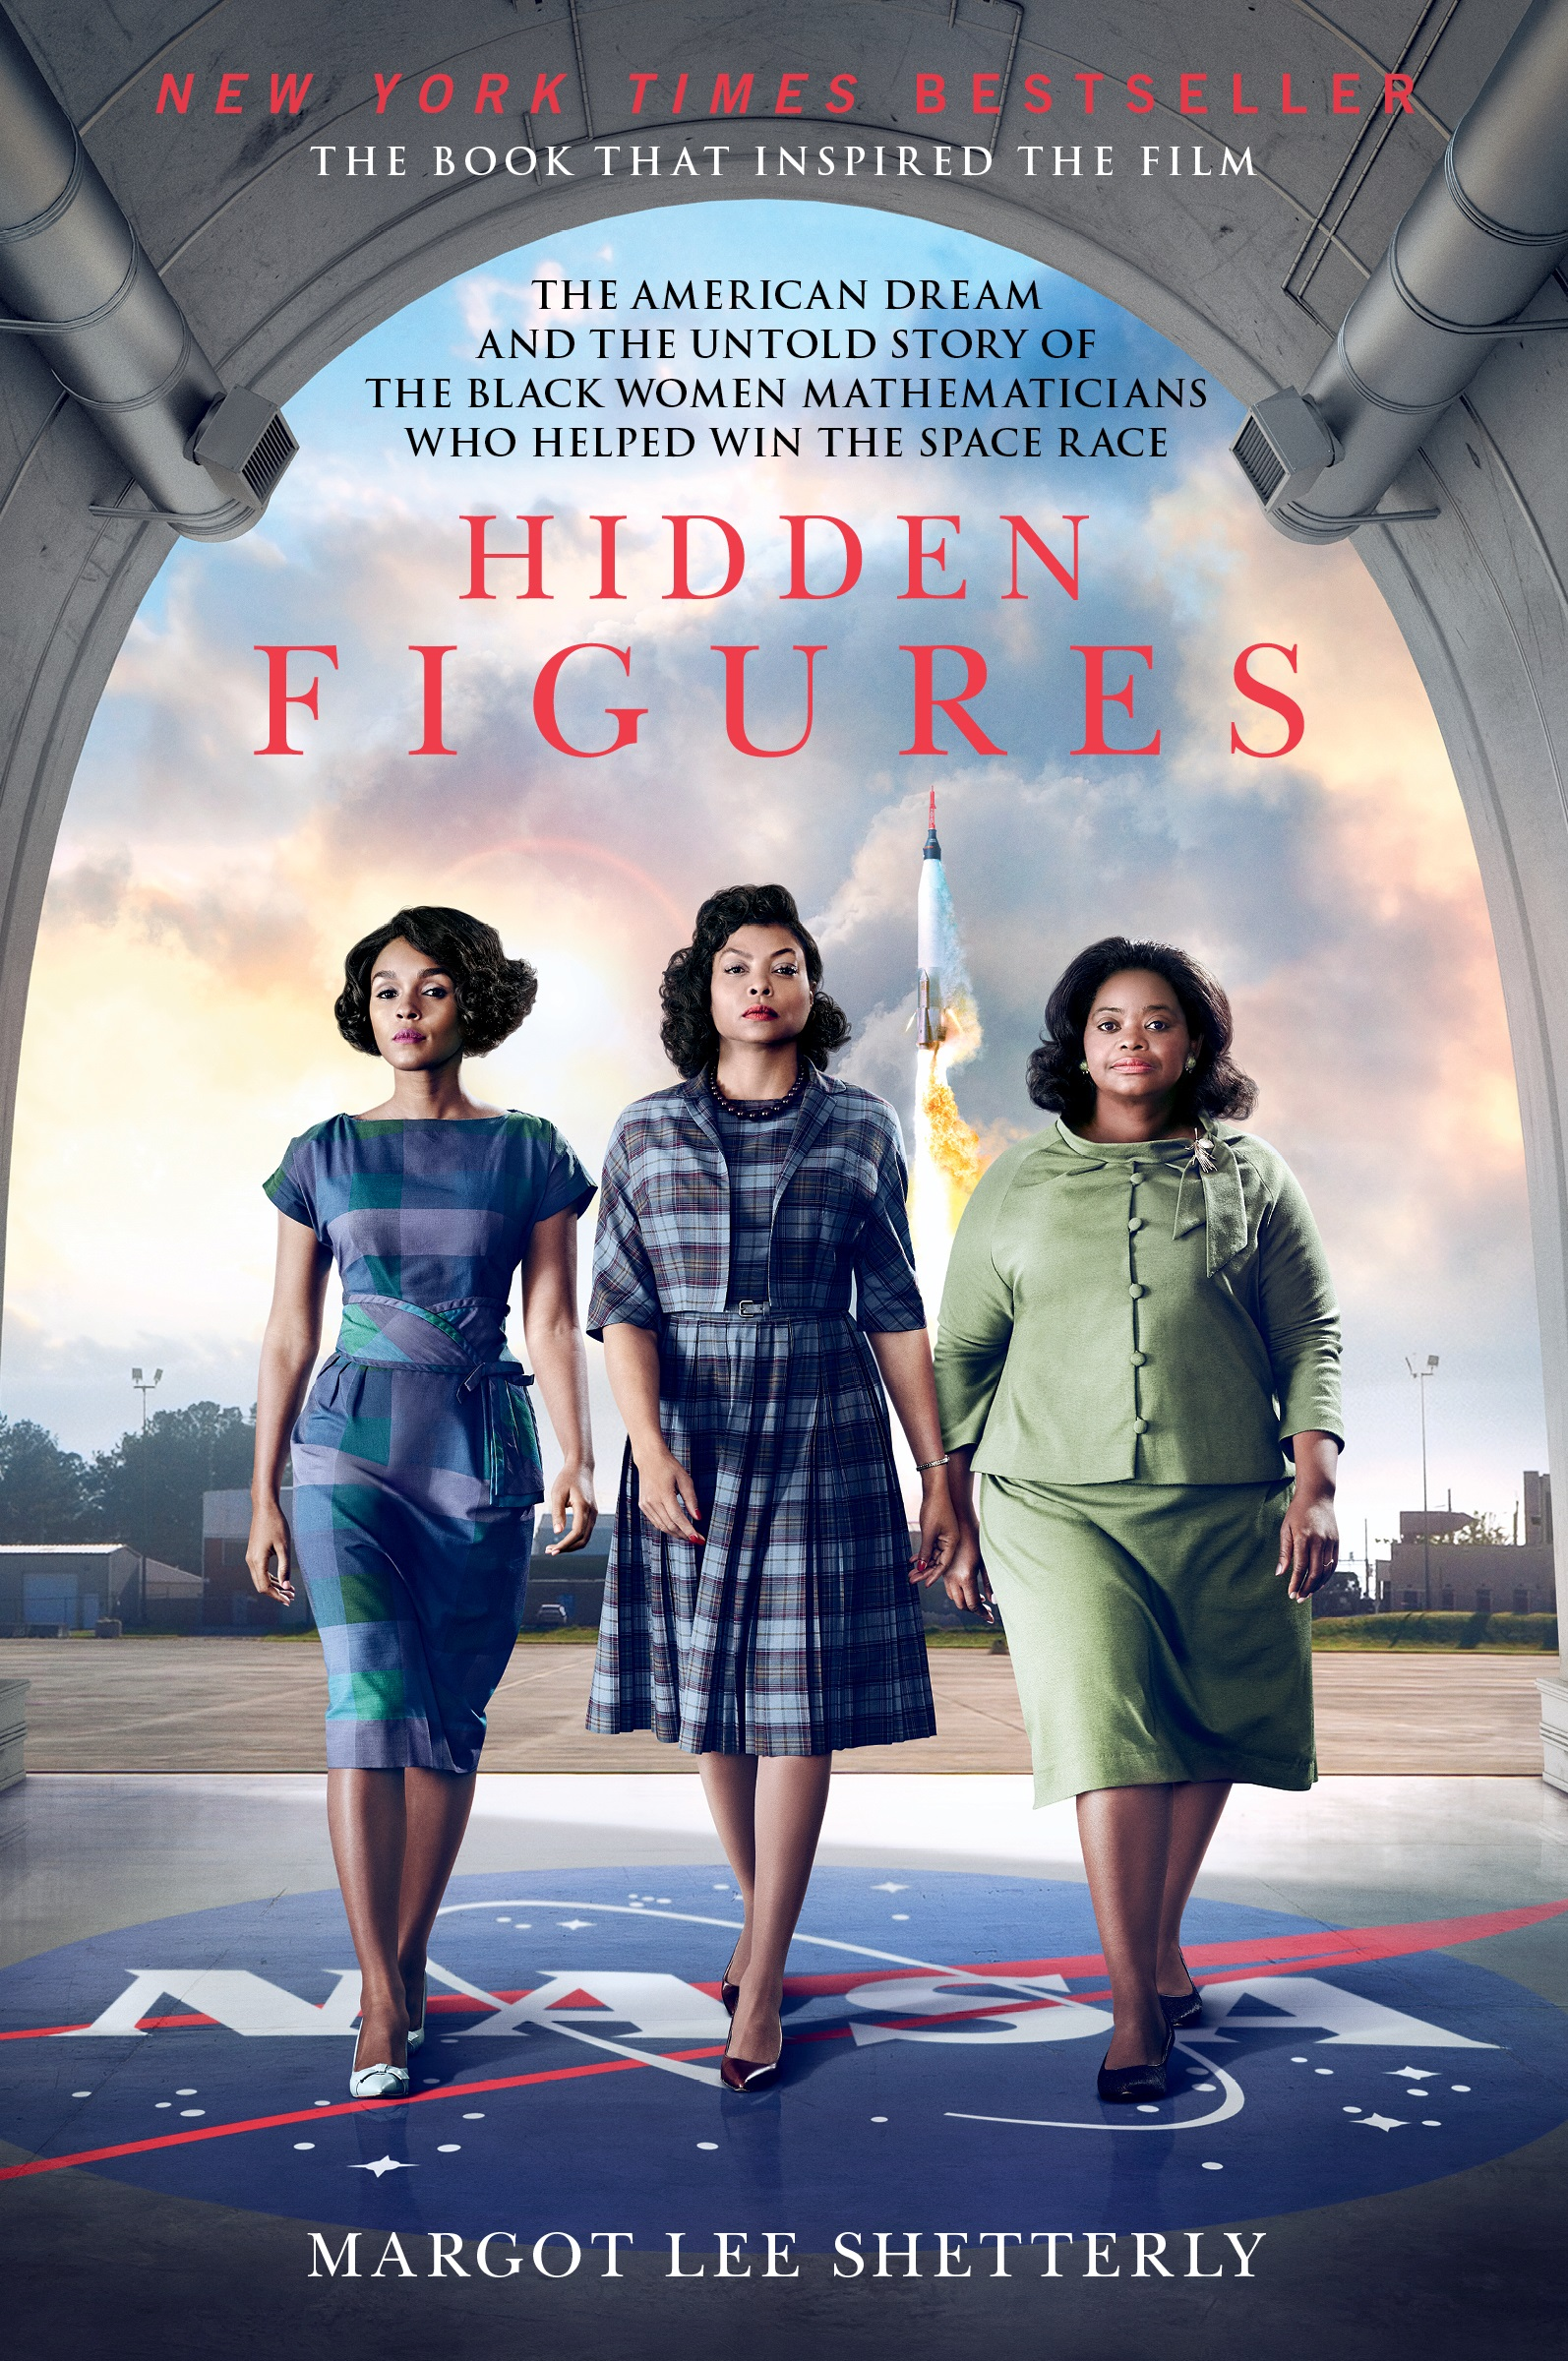 Hidden Figures: The Untold Story of the African-American Women Who Helped Win the Space Race by Margot Lee Shetterly, ISBN: 9780008201326